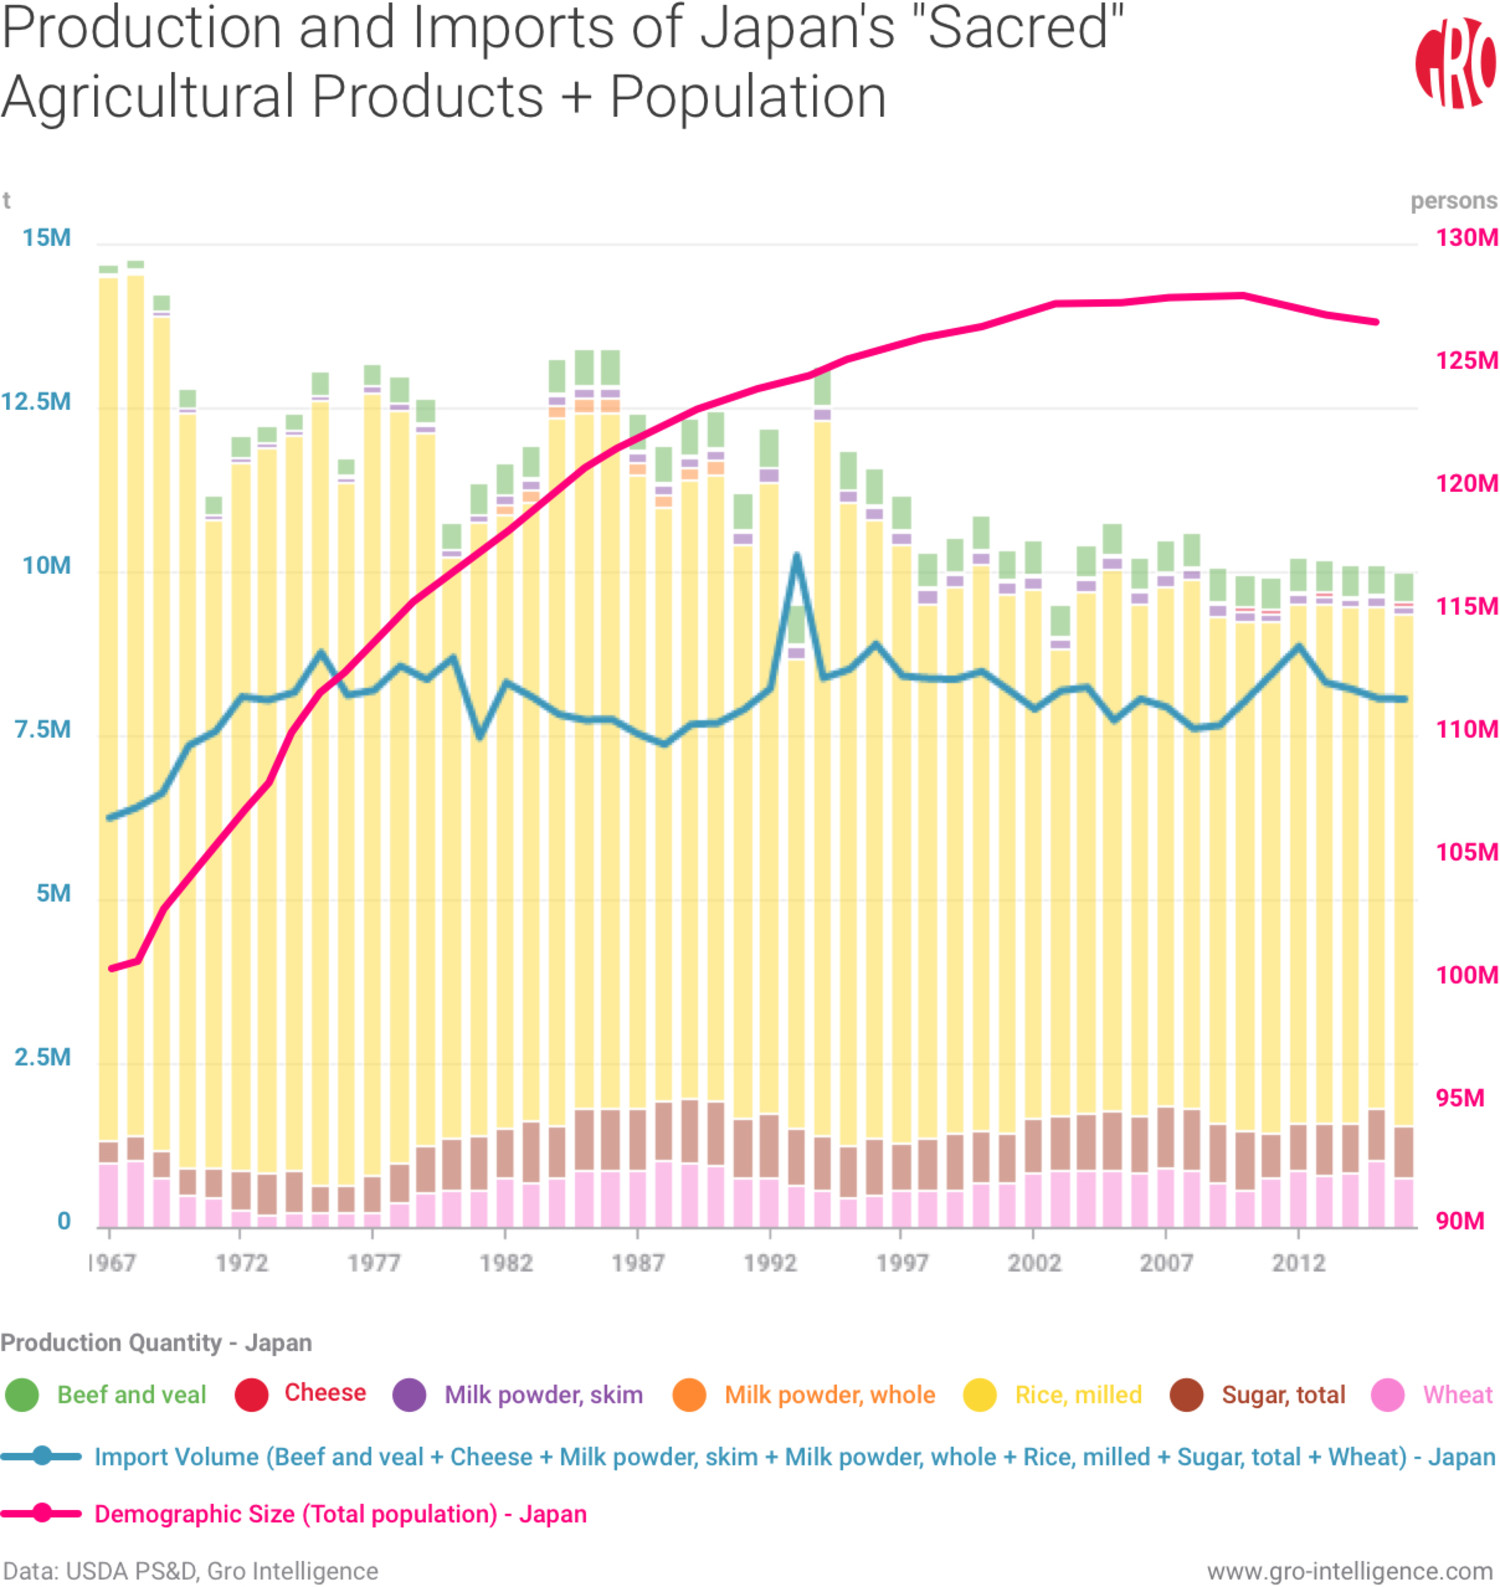 Exposing the Mystery Behind Japanese Agricultural Exports